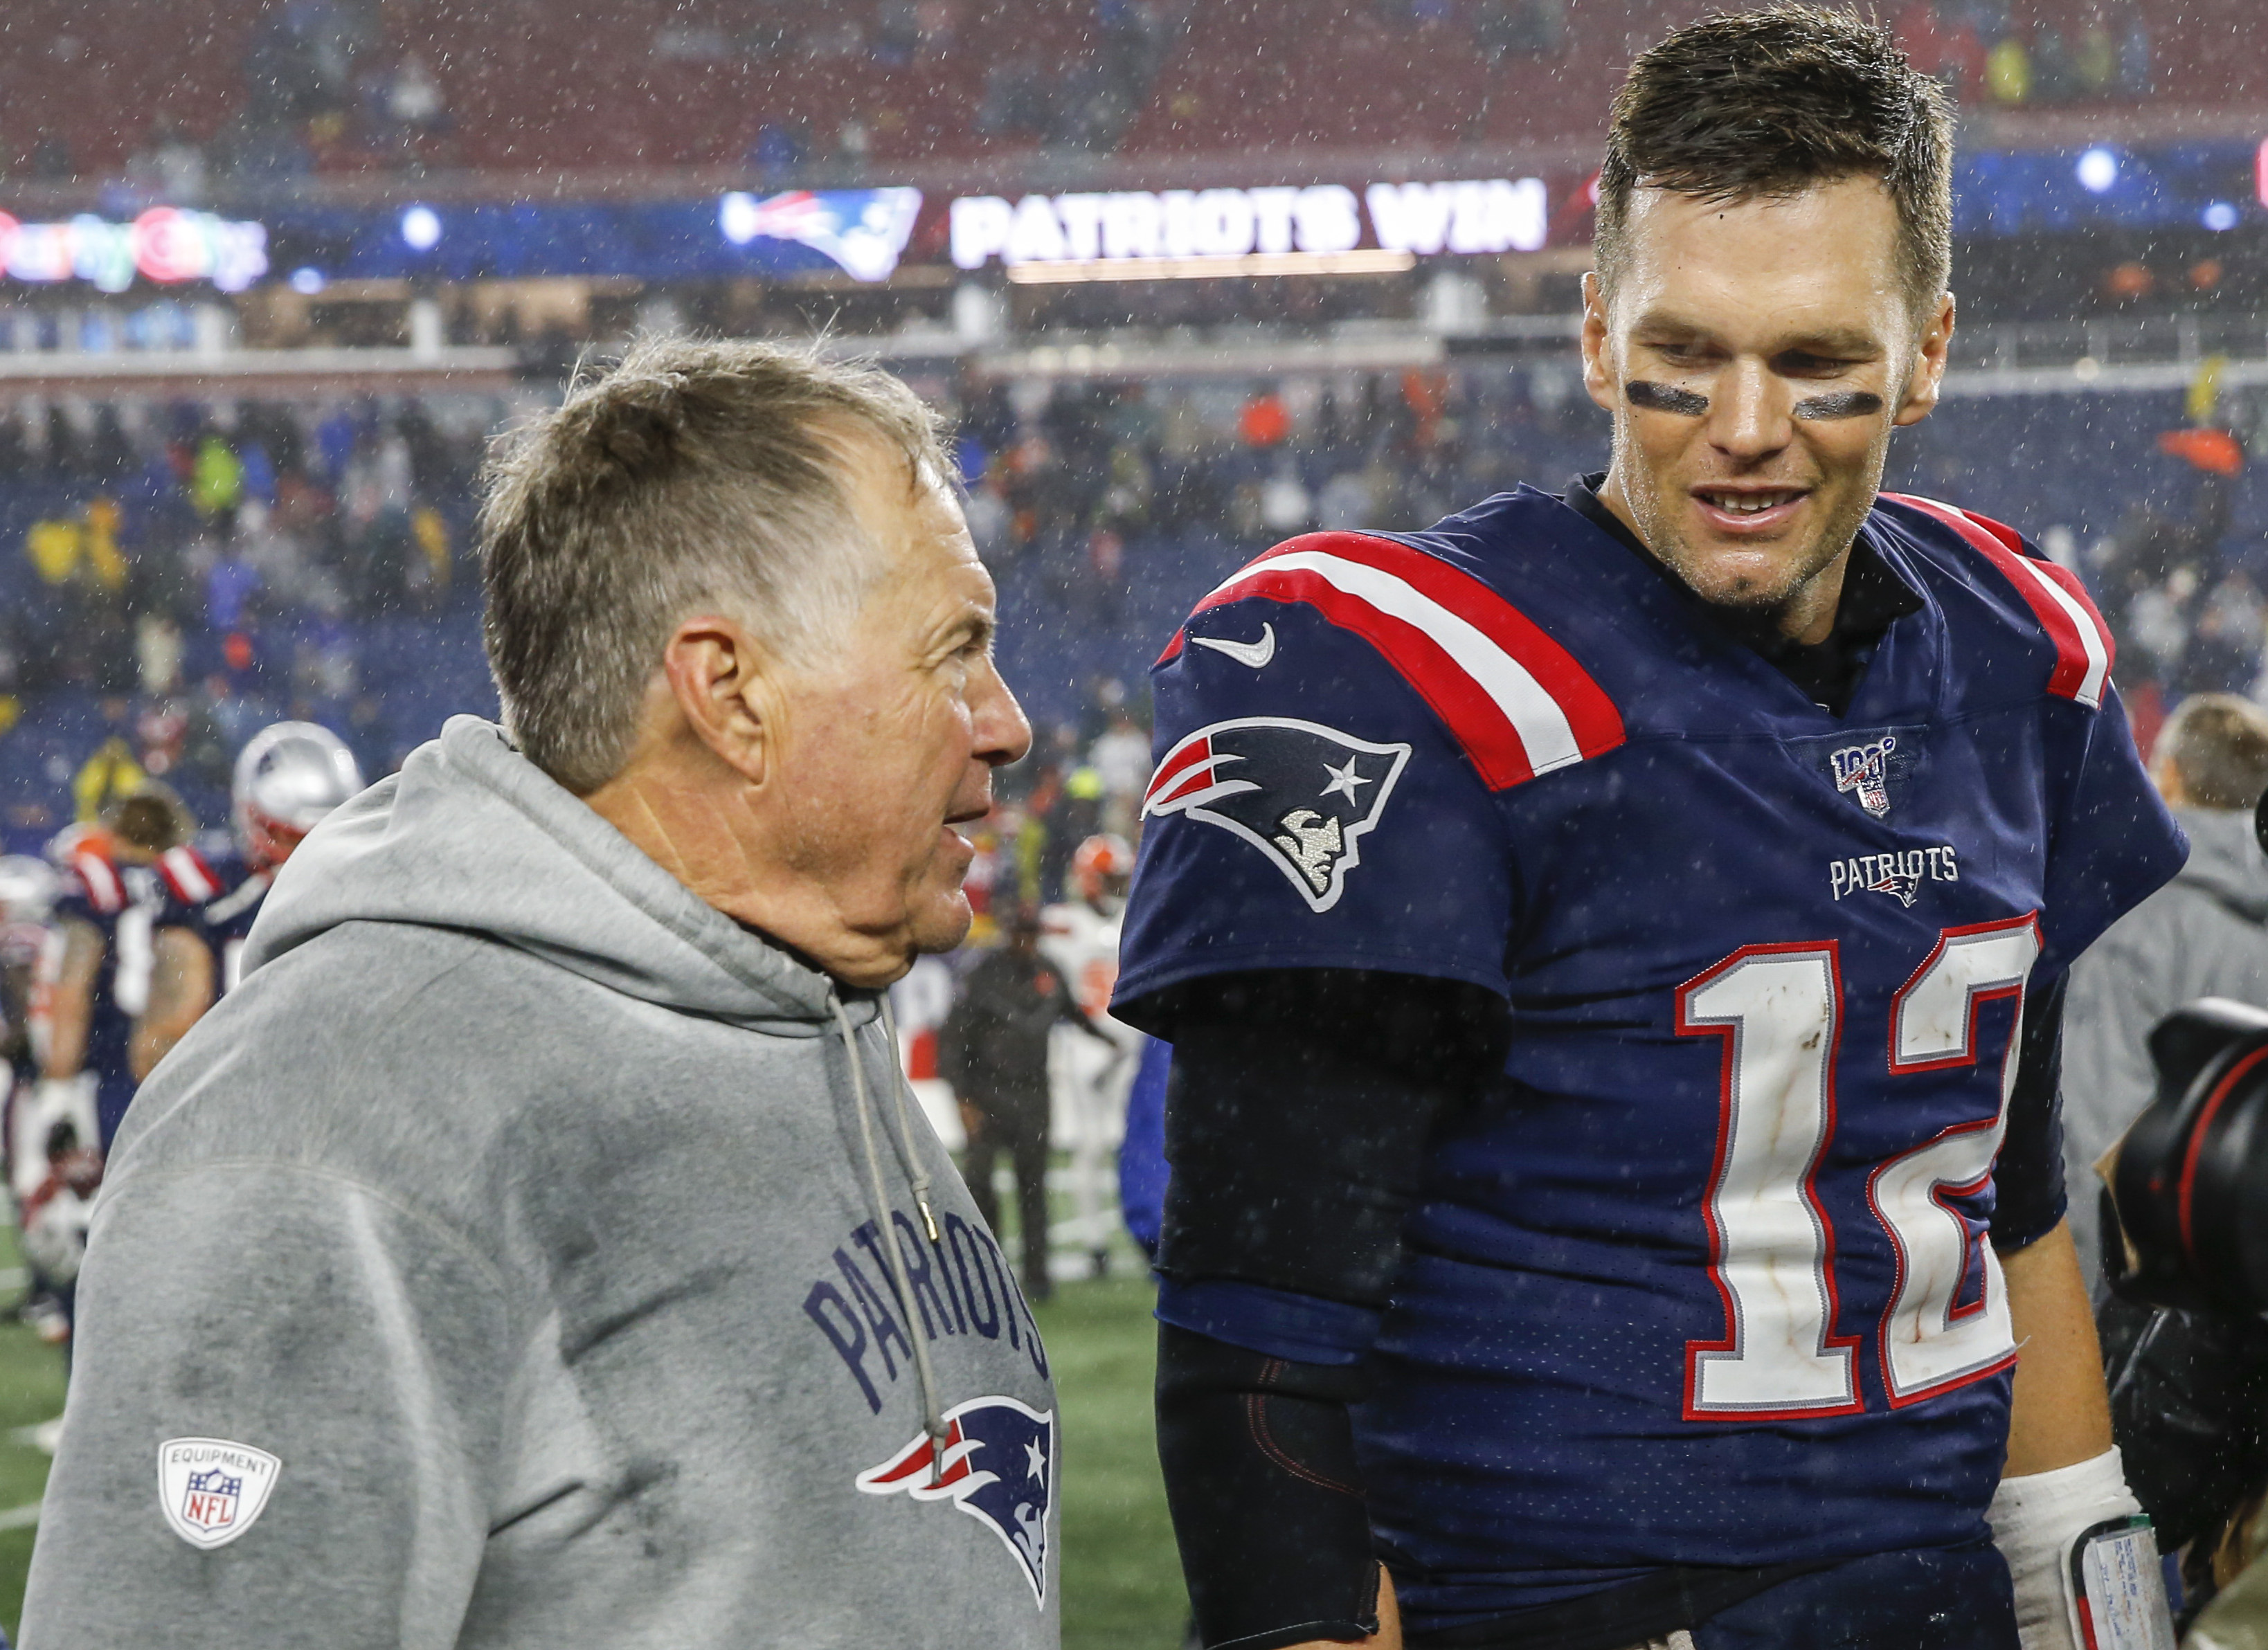 Bill Belichick already moving on from Tom Brady's departure